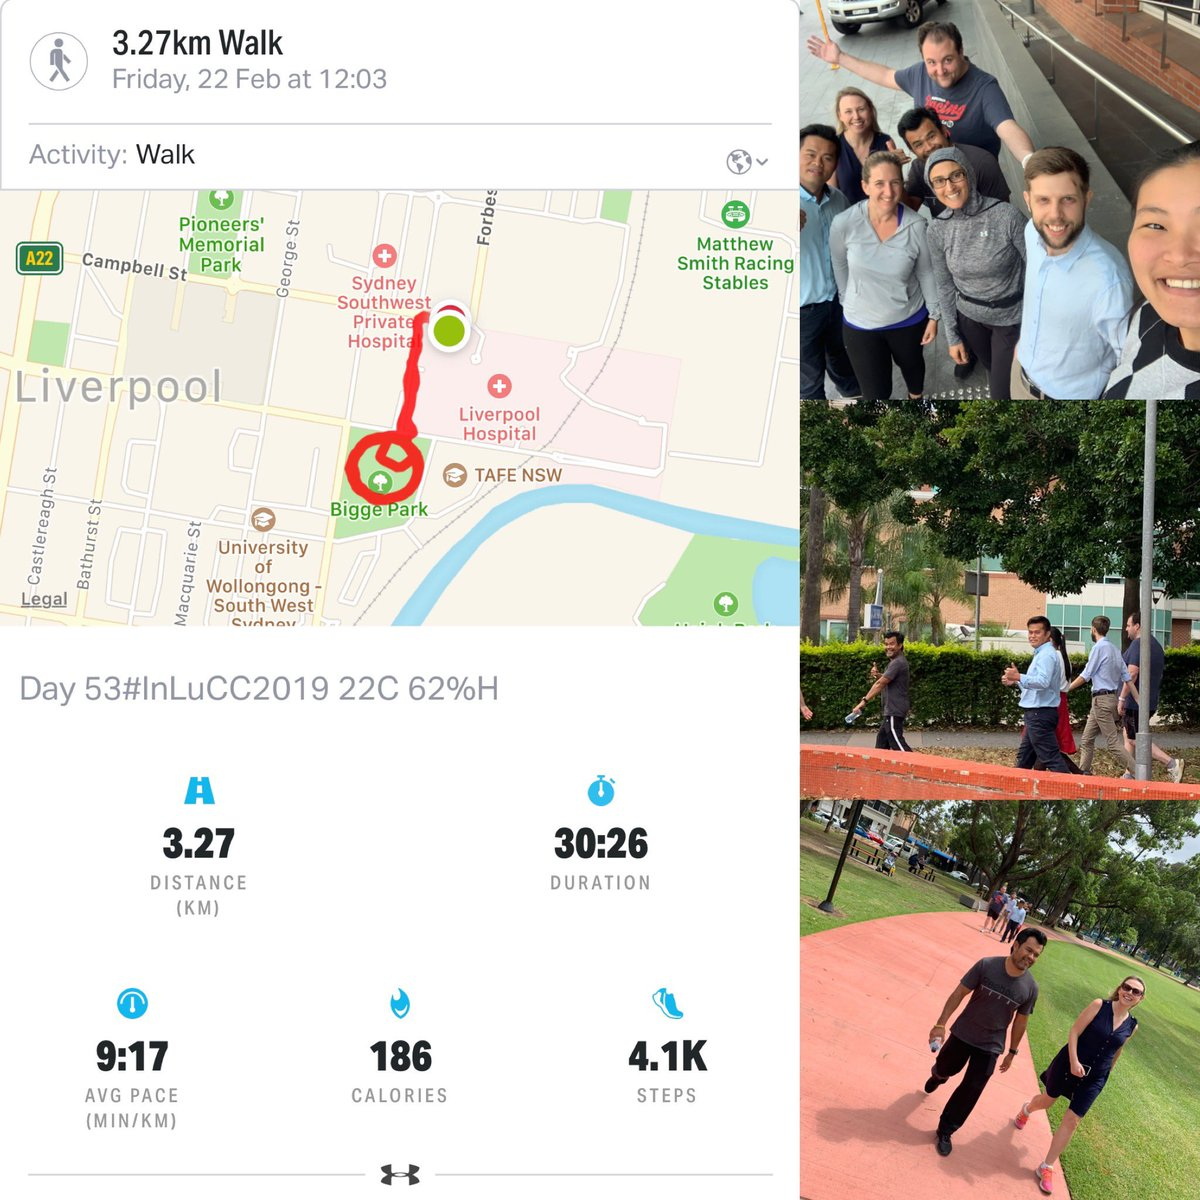 Day 53 #InLuCC2019 lunch time walk for #LungCancerAwareness with work colleagues and mates. Follow link in bio to donation page. #LungCancerResearch at the #inghaminstitute #LungCancer #IAmAndIWill  #FairGoForLungCancer #NotAllCancerIsPink<br>http://pic.twitter.com/sJOK9c4VEs